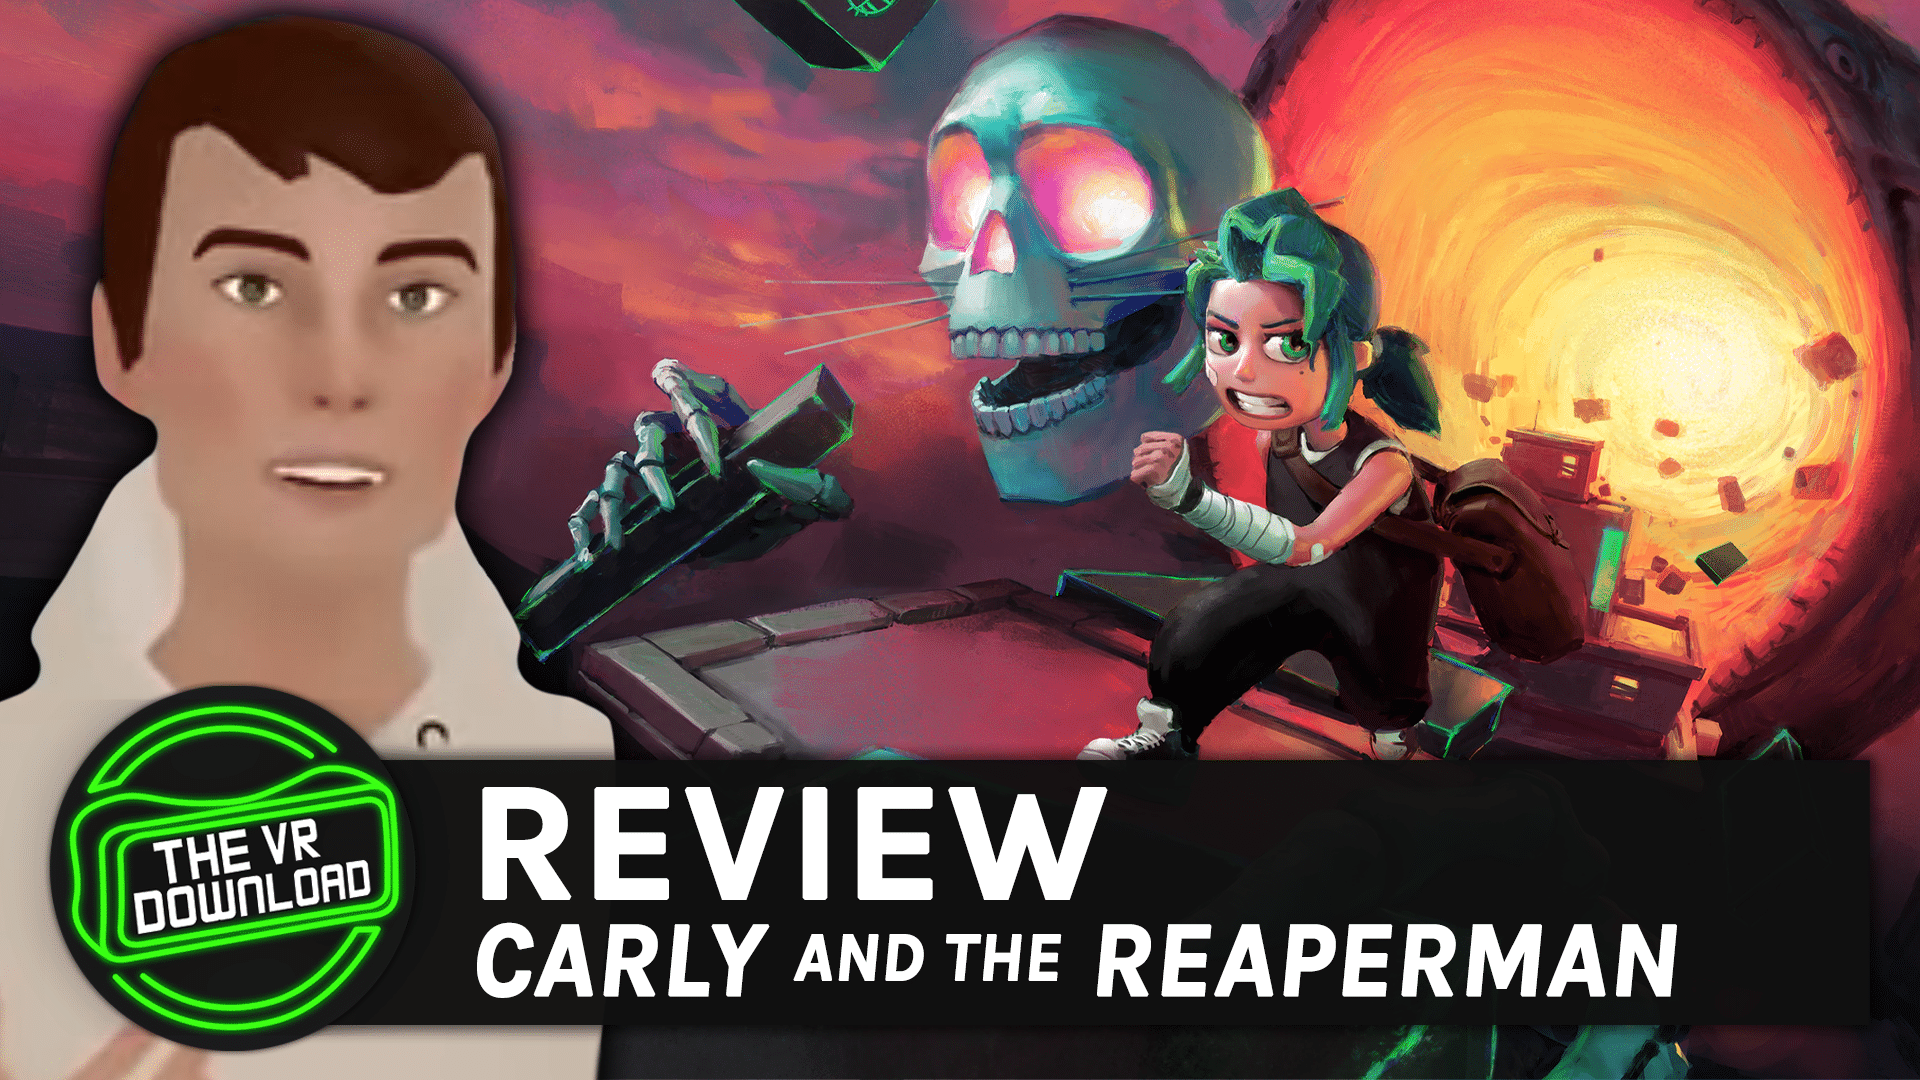 carly and the reaperman review VR DOWNLOAD